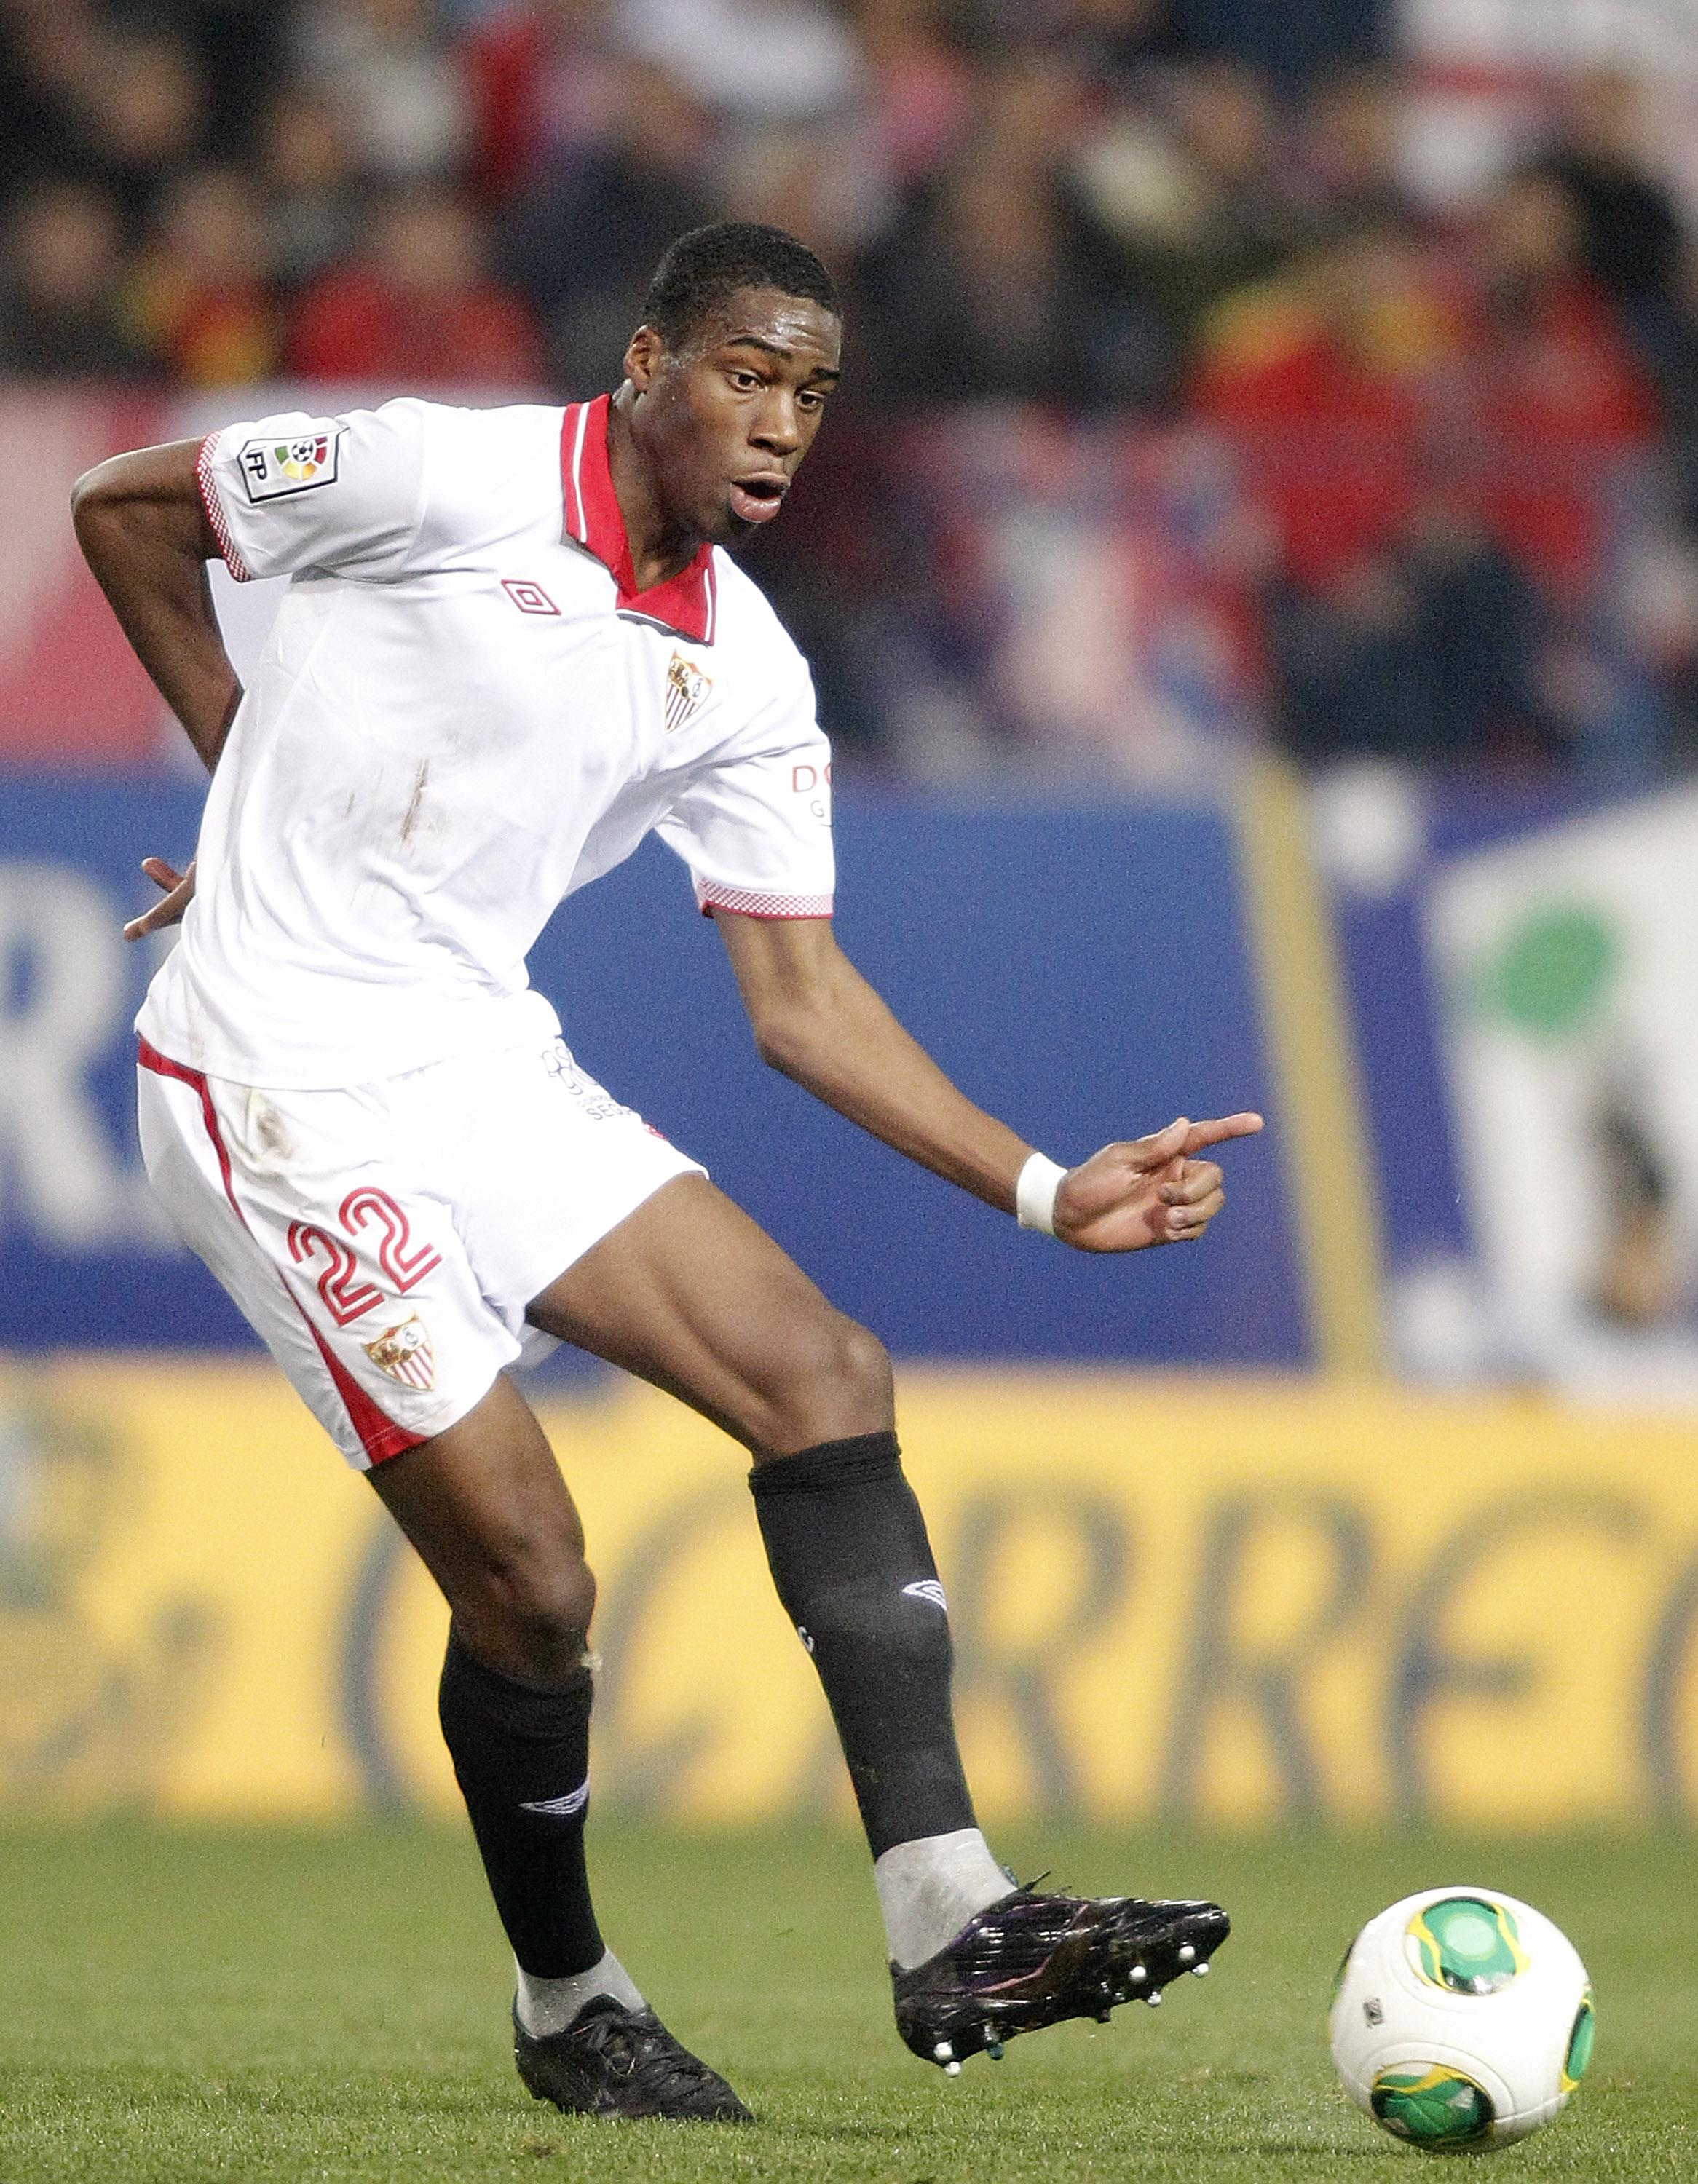 Kondogbia was sent off during a game at Sevilla